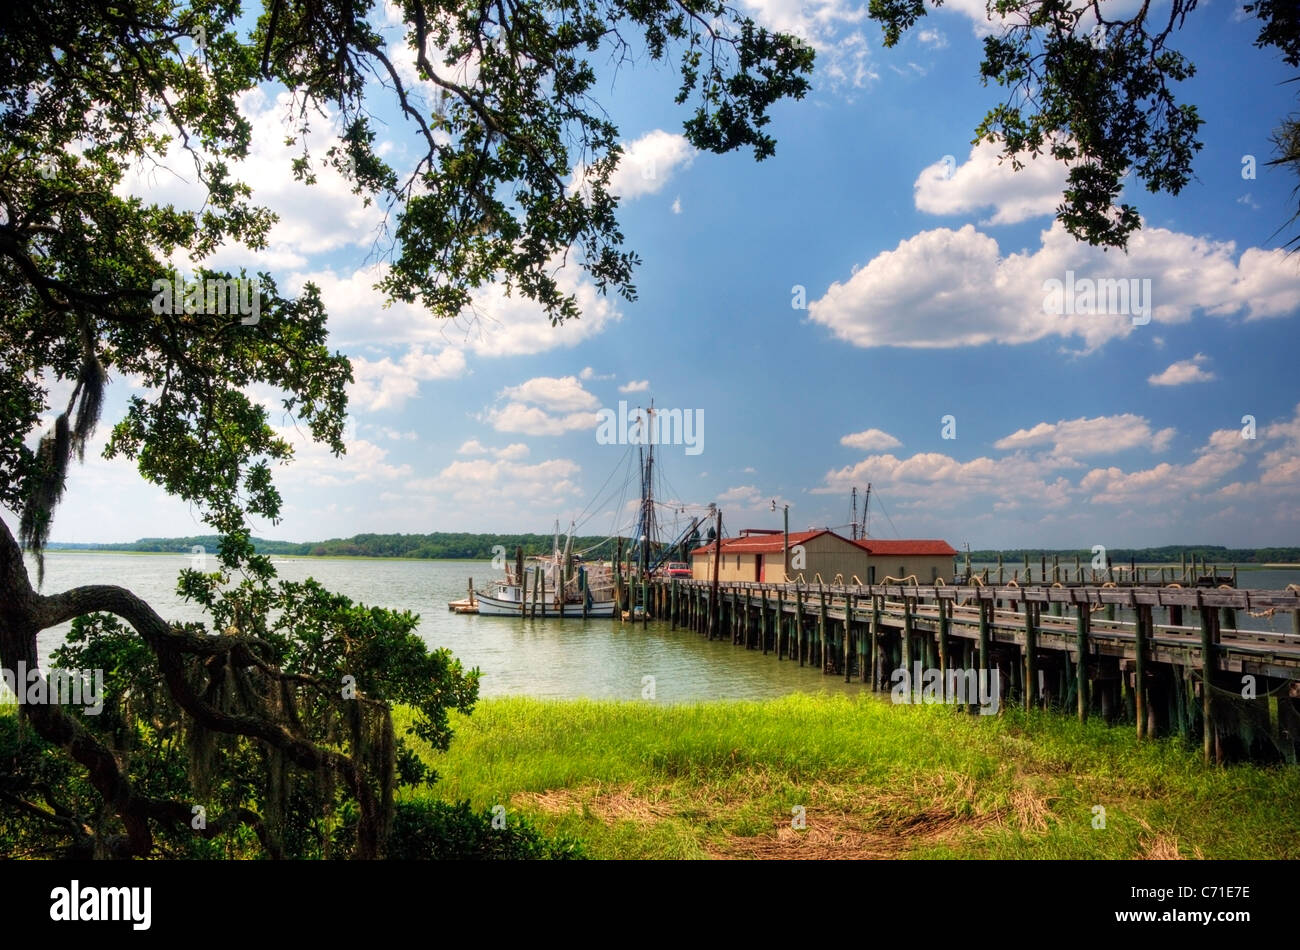 Shrimp boats are docked at the end of a pier on the Intracoastal Waterway on Hilton Head Island, SC. - Stock Image